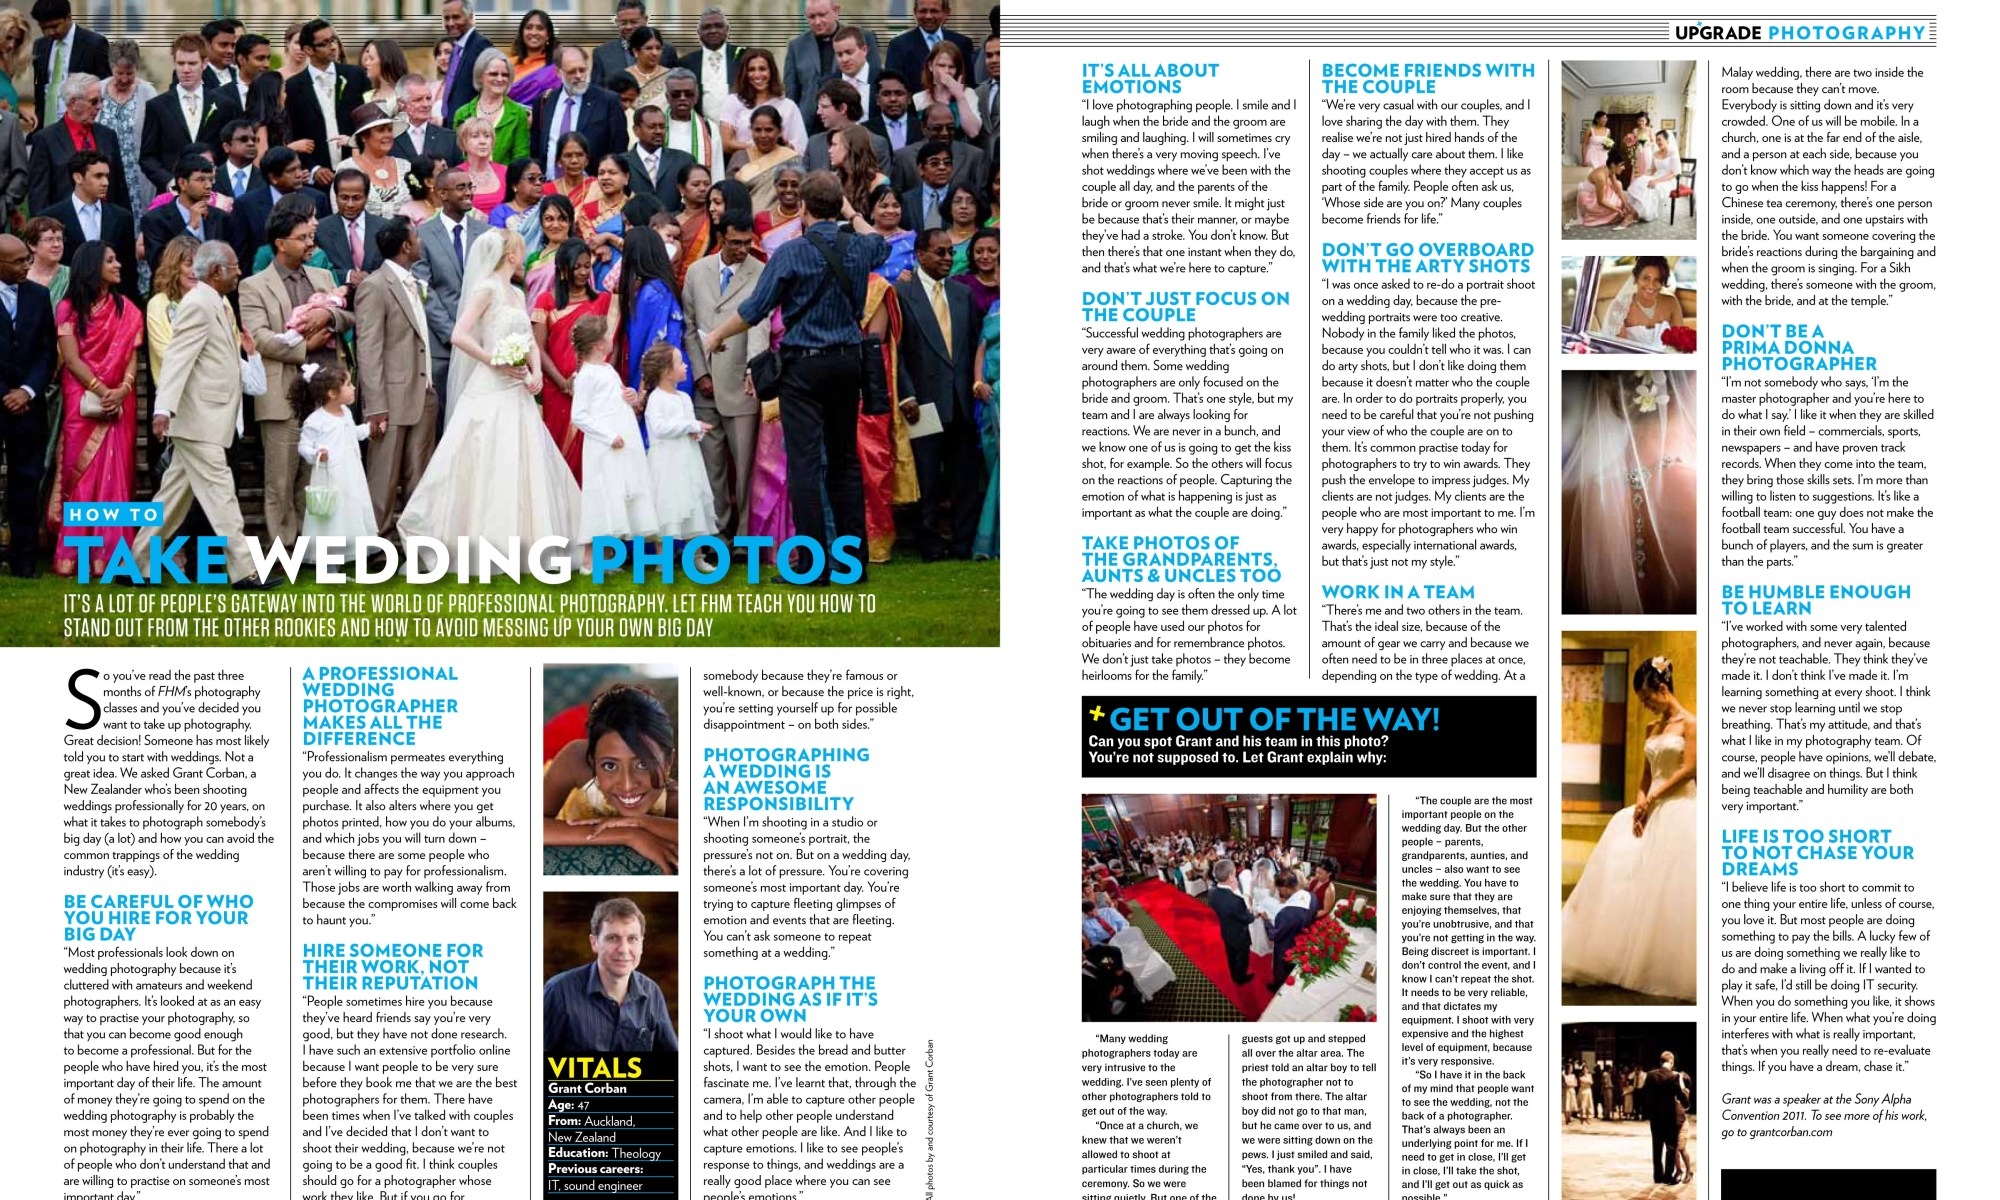 Grant Corban Wedding Photographer featured in FHM